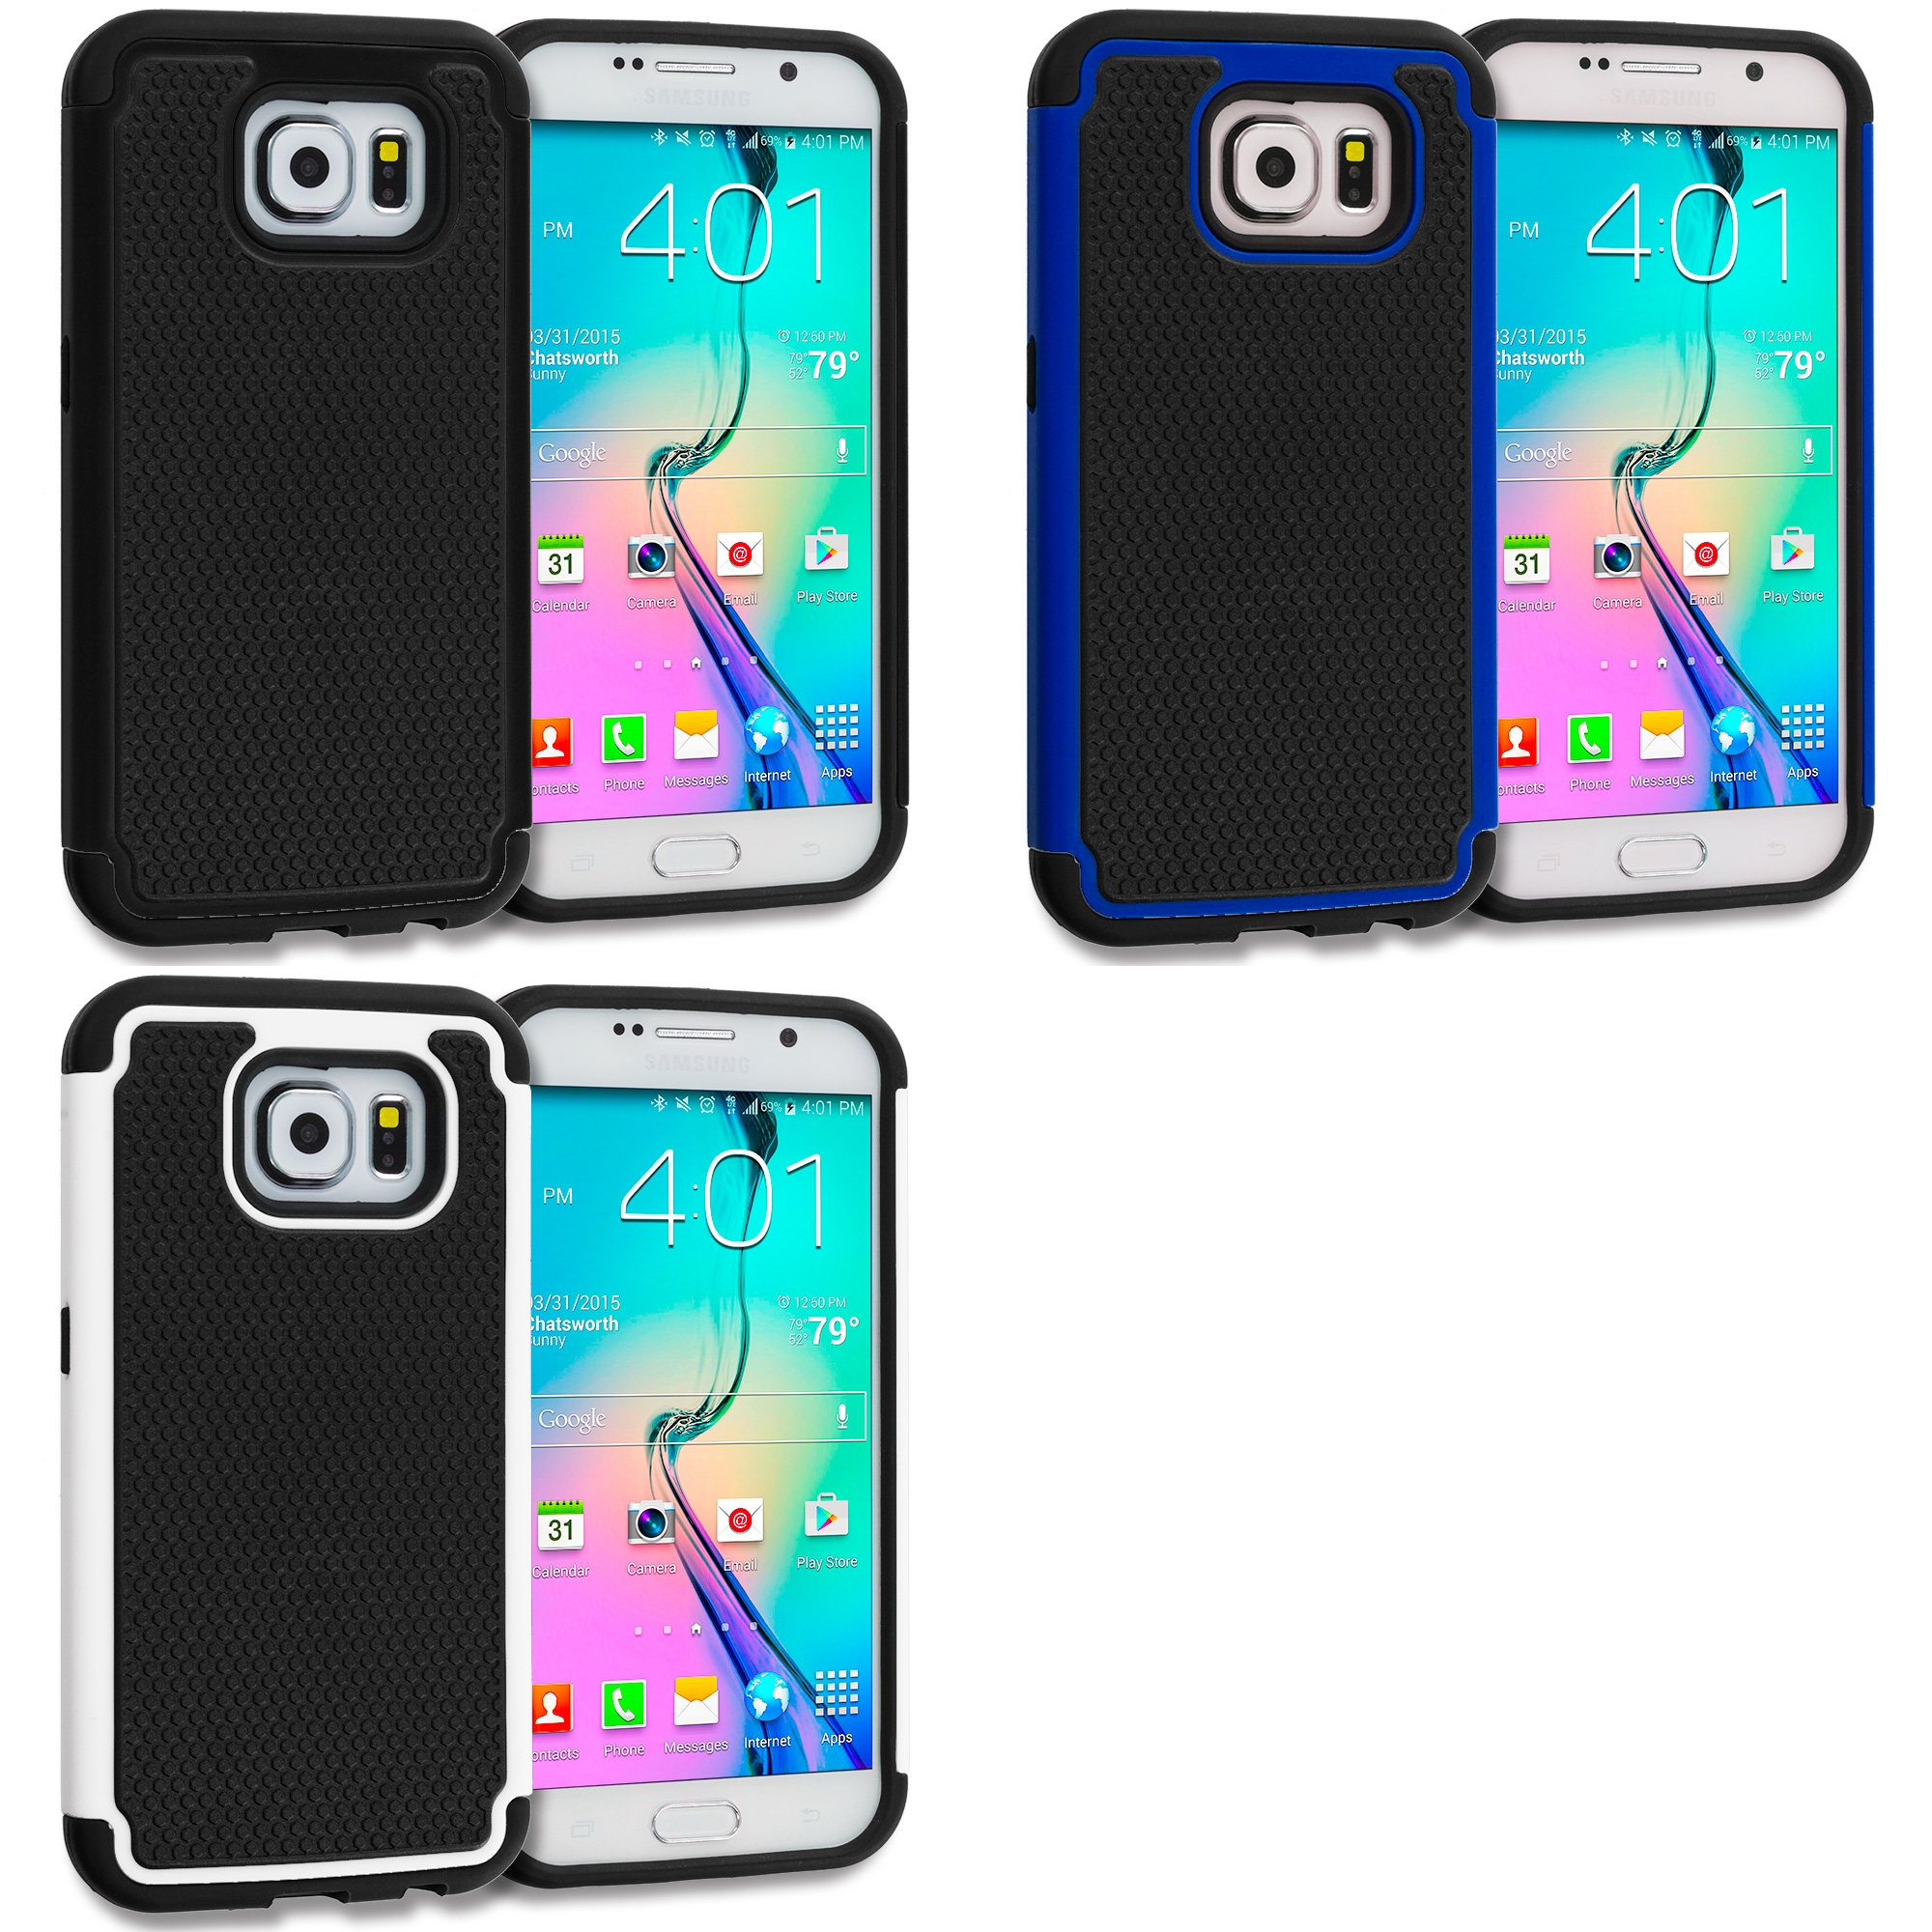 Samsung Galaxy S6 Combo Pack : Black / Black Hybrid Rugged Grip Shockproof Case Cover